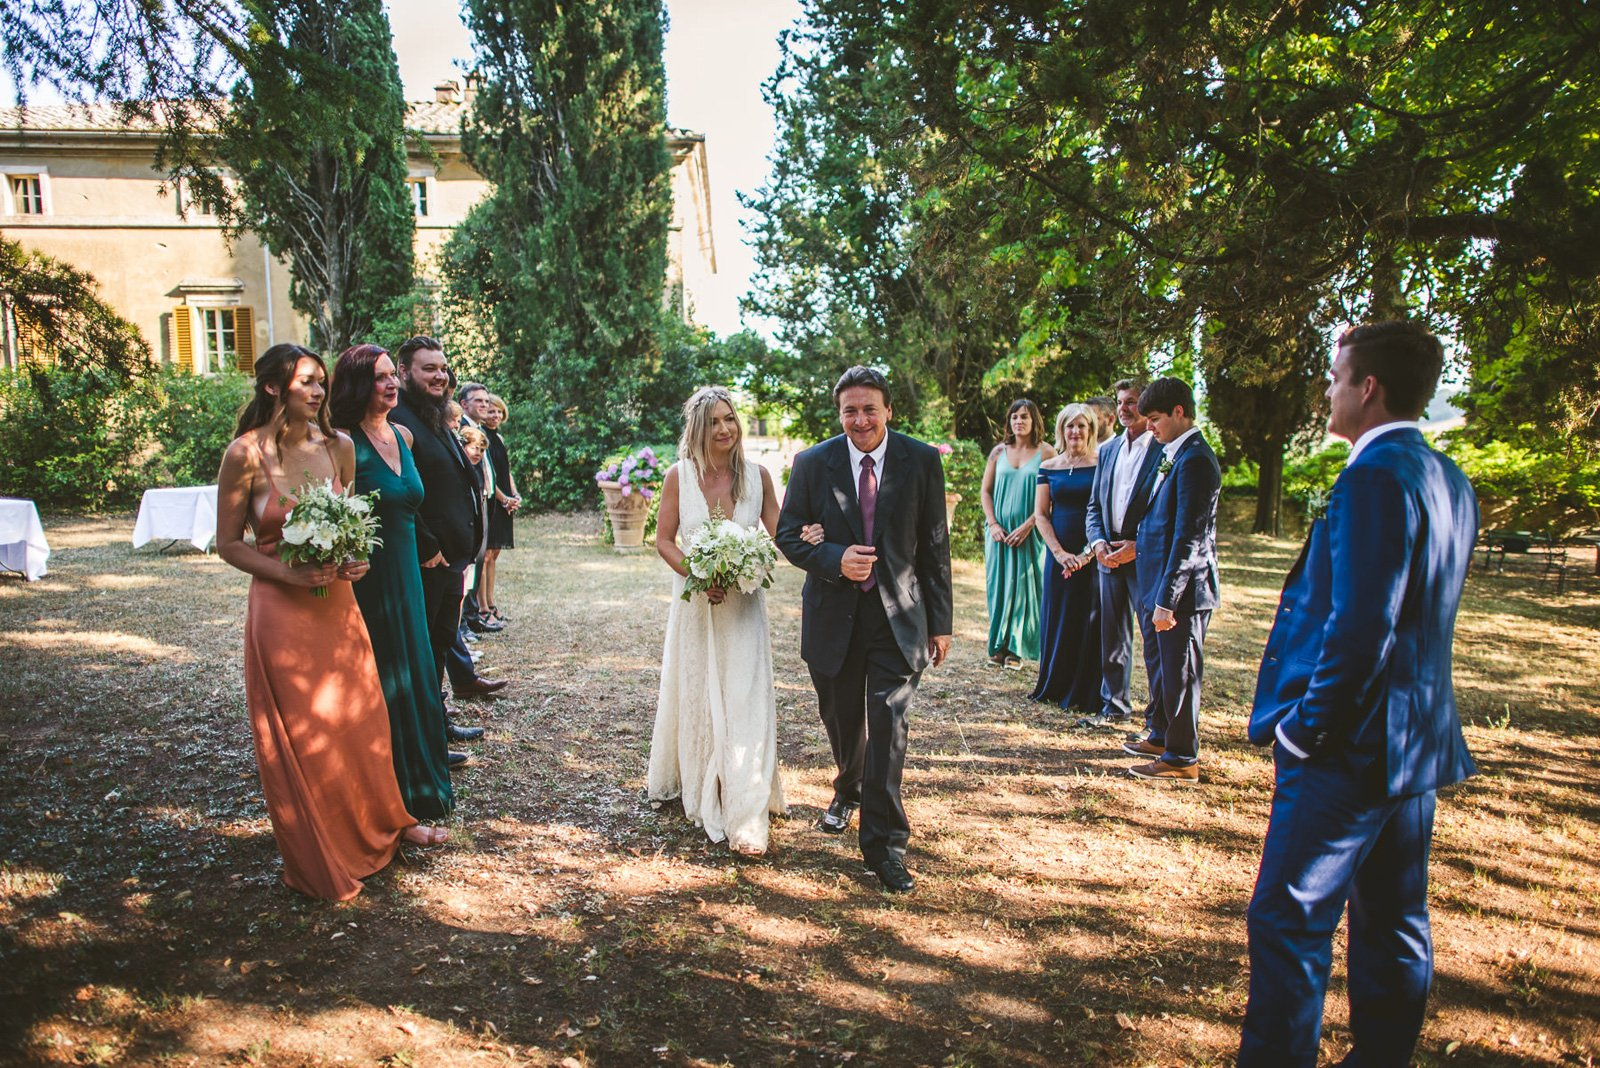 A+L Wedding at Montechiaro, Siena by Federico Pannacci 49